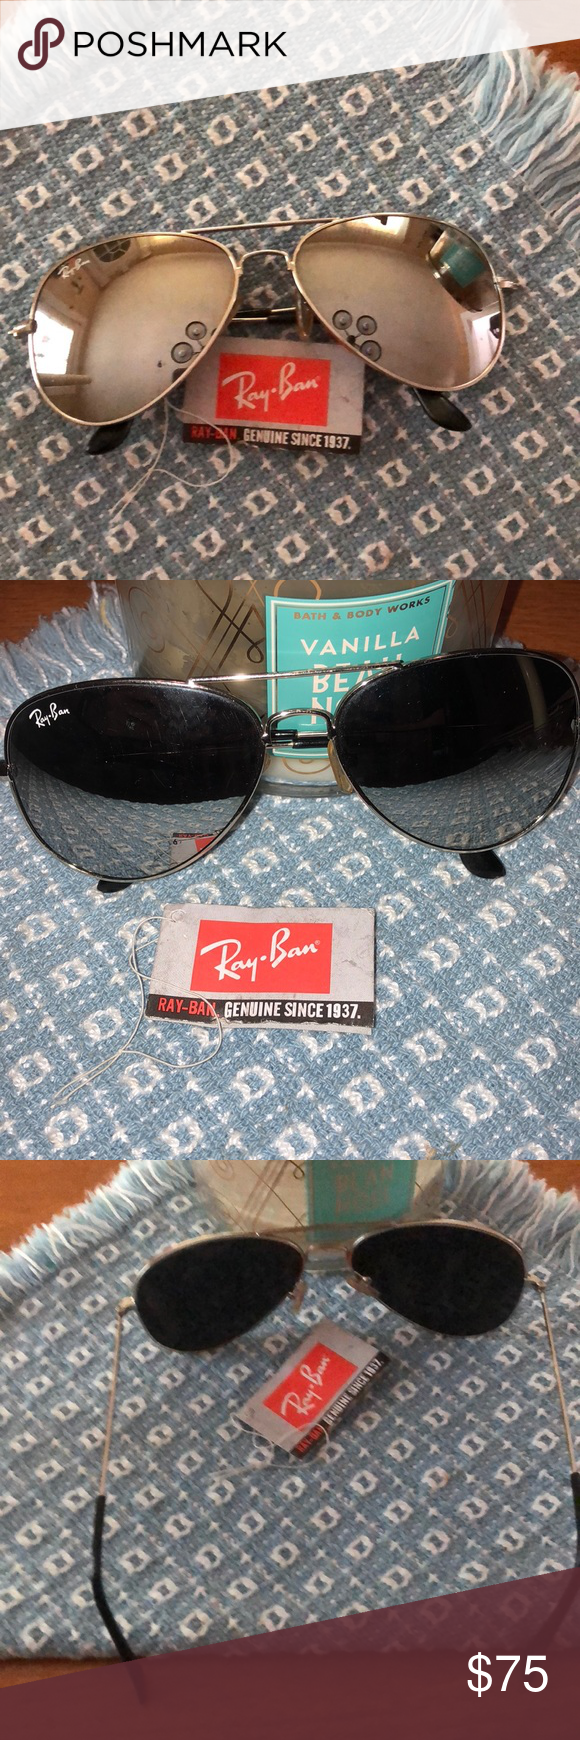 79fc4ac920 Ray-Ban Lei Peng QB2457. RARE GUC Ray-Ban Lei Peng aviators. 2 Small chips  in the left lens. See the last pic. 58mm No box or cloth.